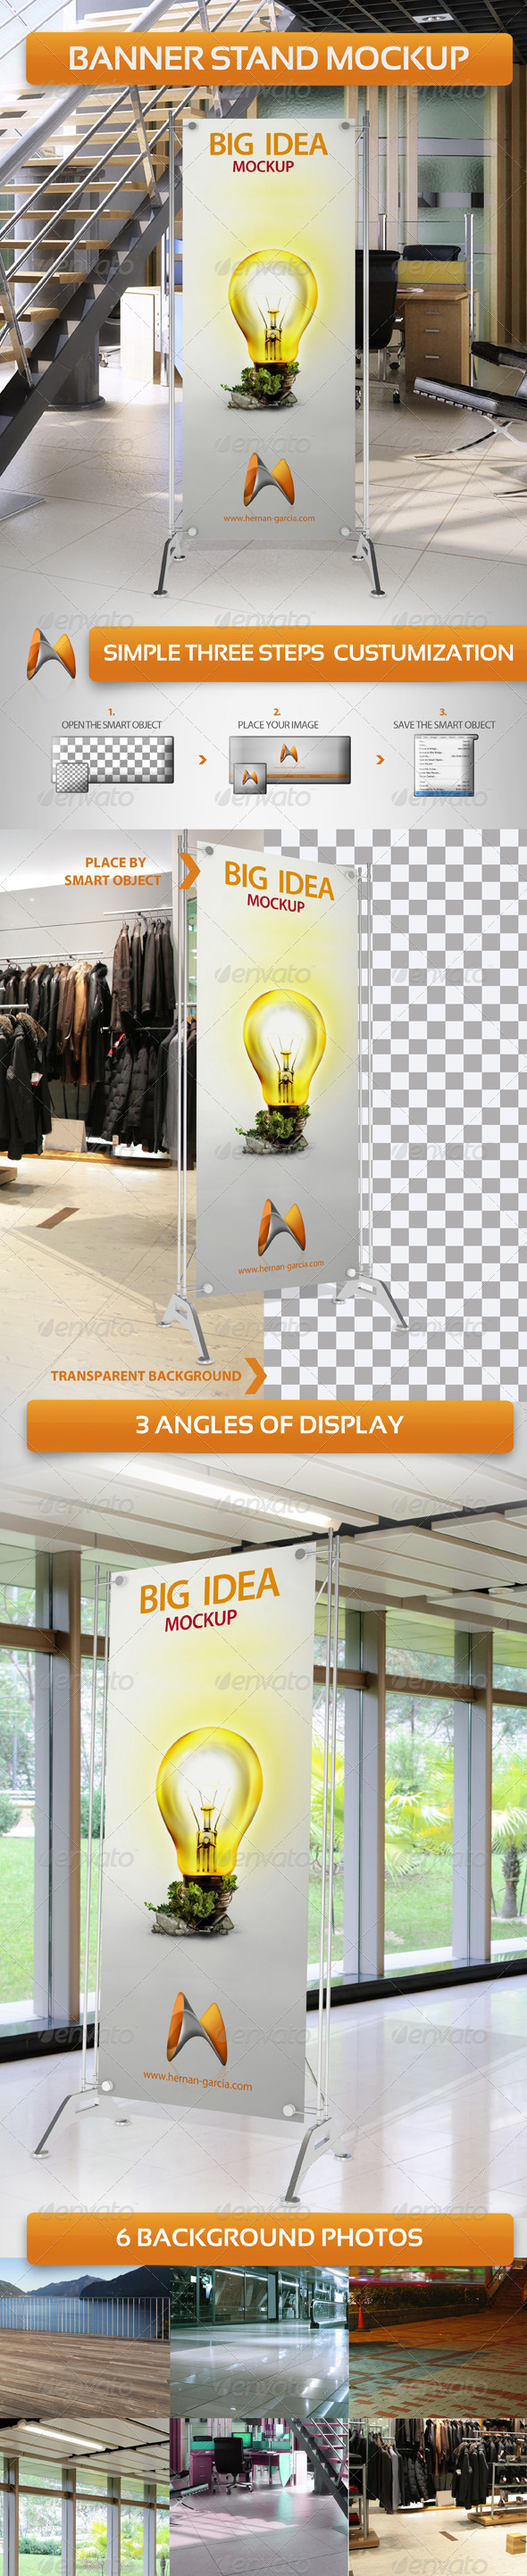 GraphicRiver Banner Stand Mockup 3985536